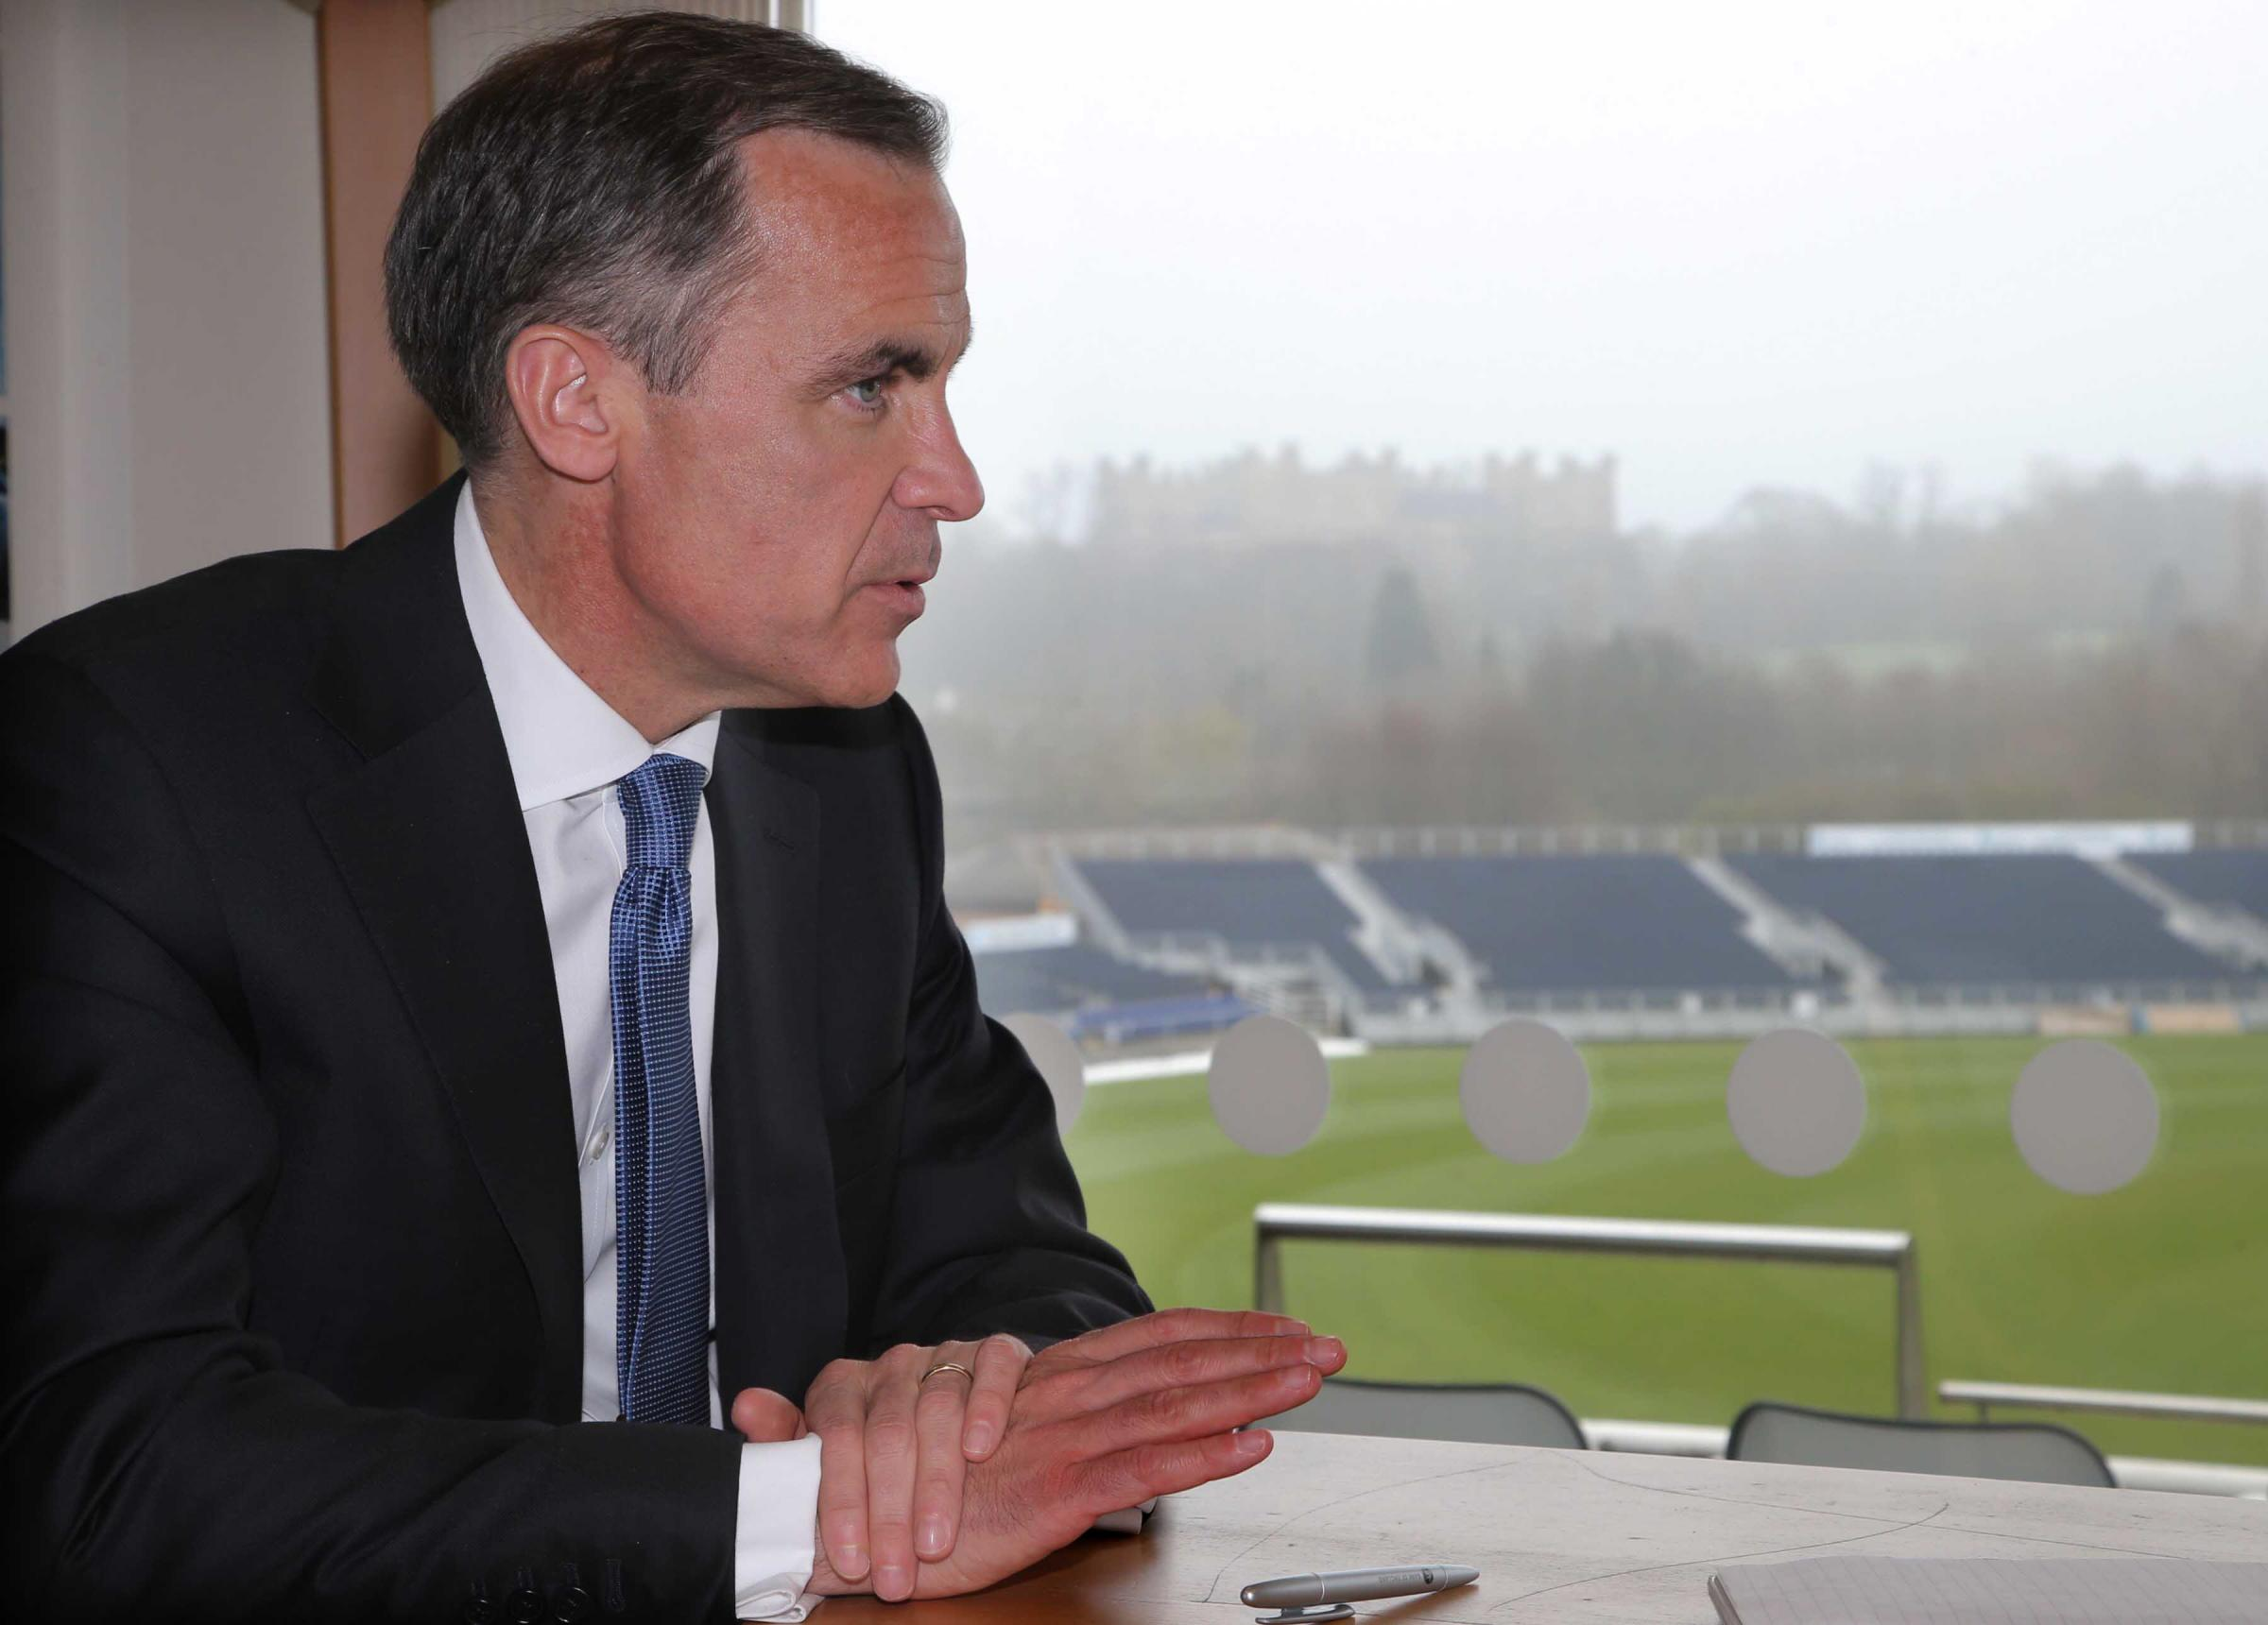 Mark Carney, Governor of the Bank of England at the cricket ground in Chester-le-Street in April